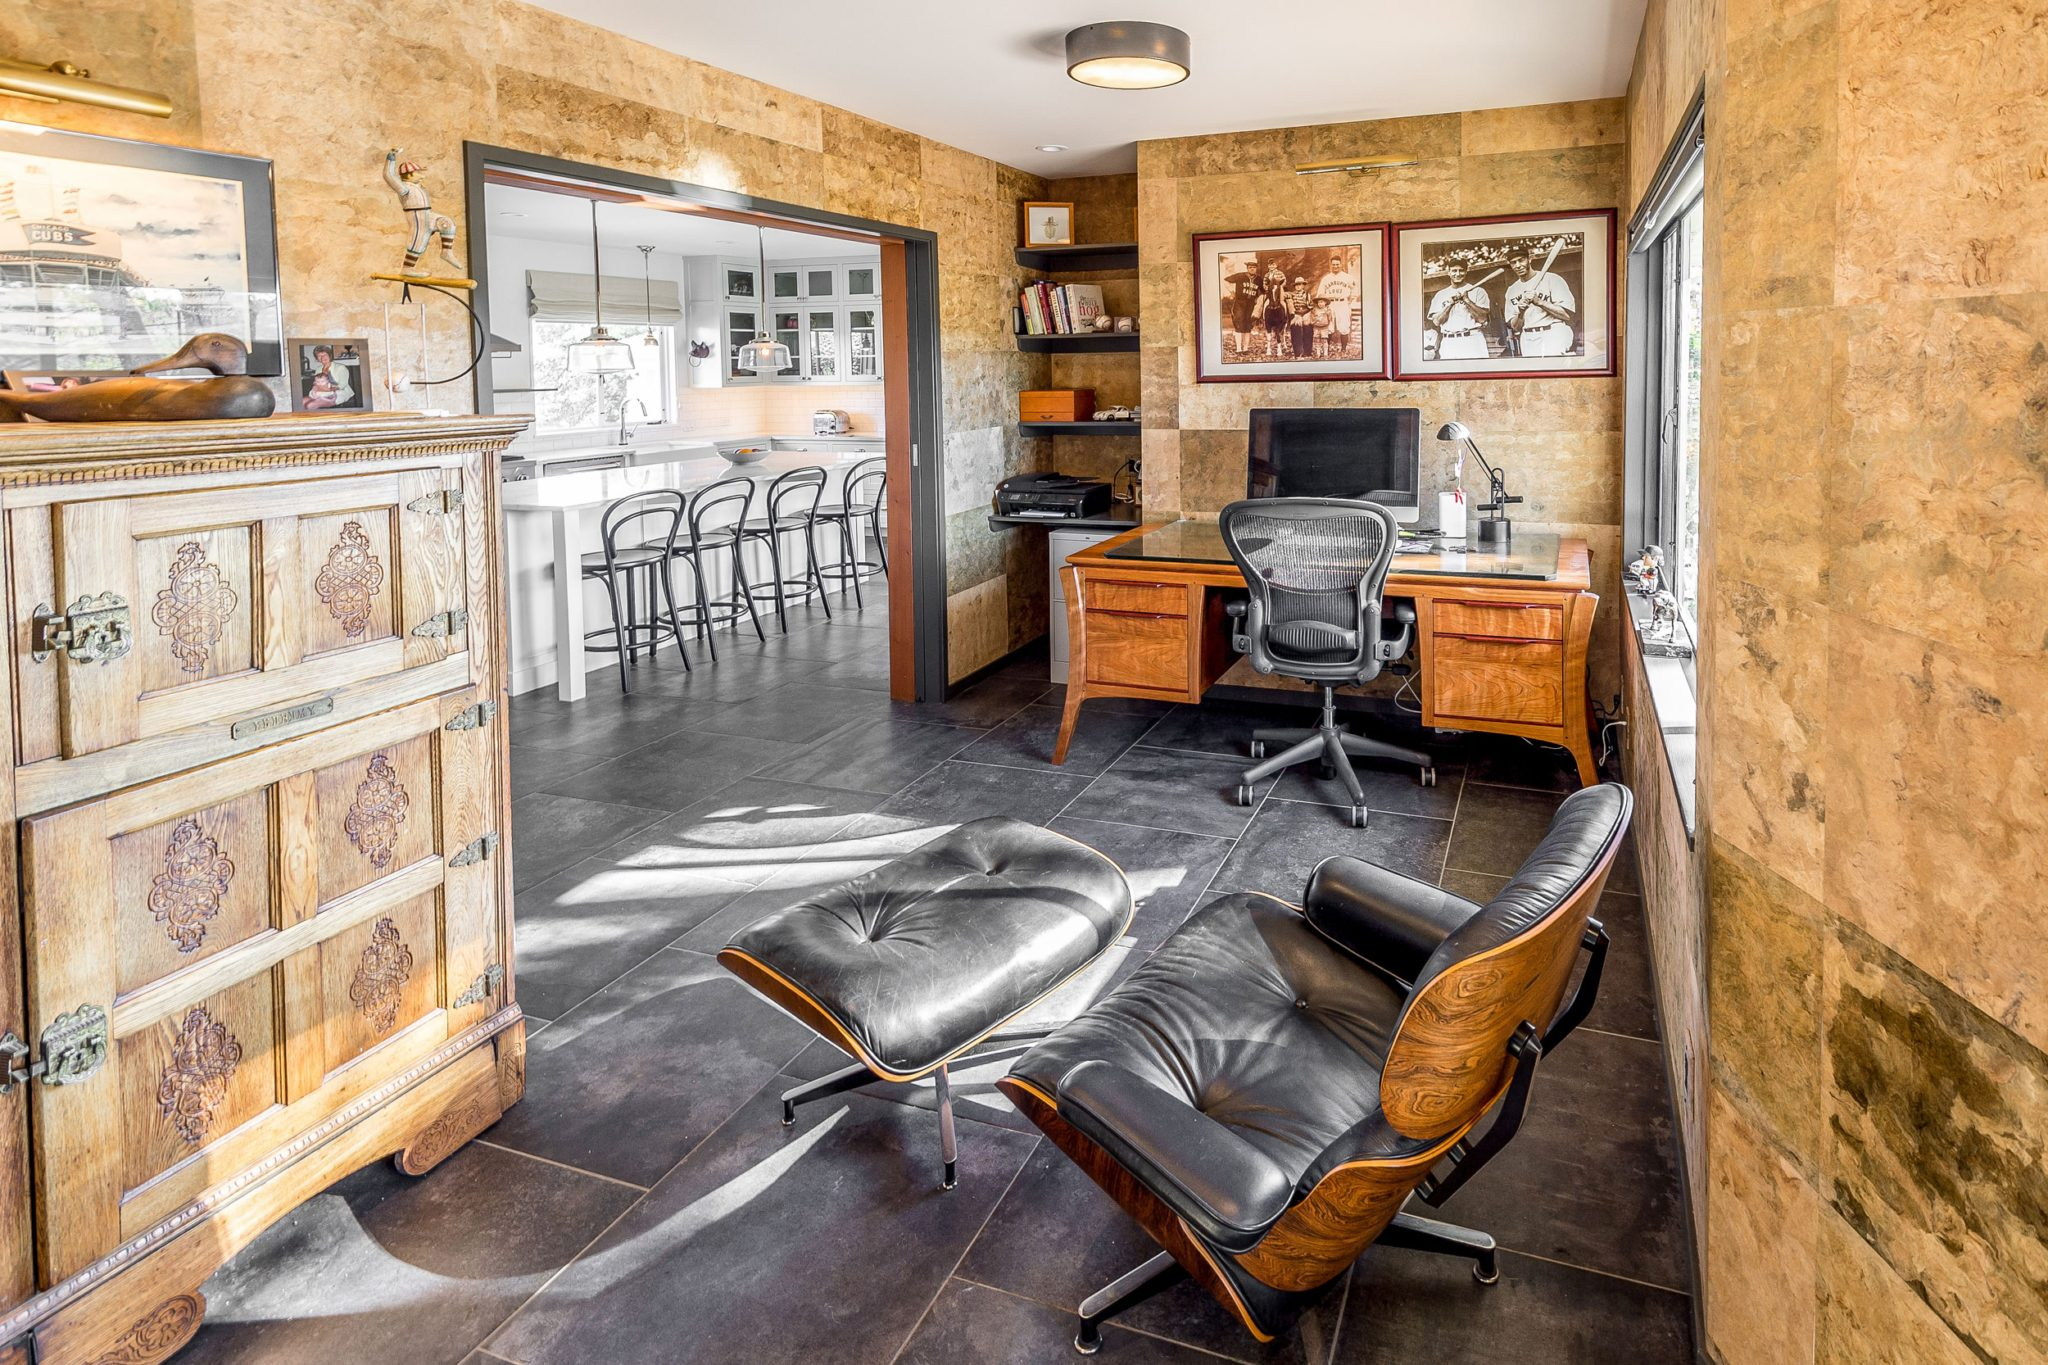 California Wine Country Renovation: Home Office andKitchen Beyond by Buccellato Design, LLC